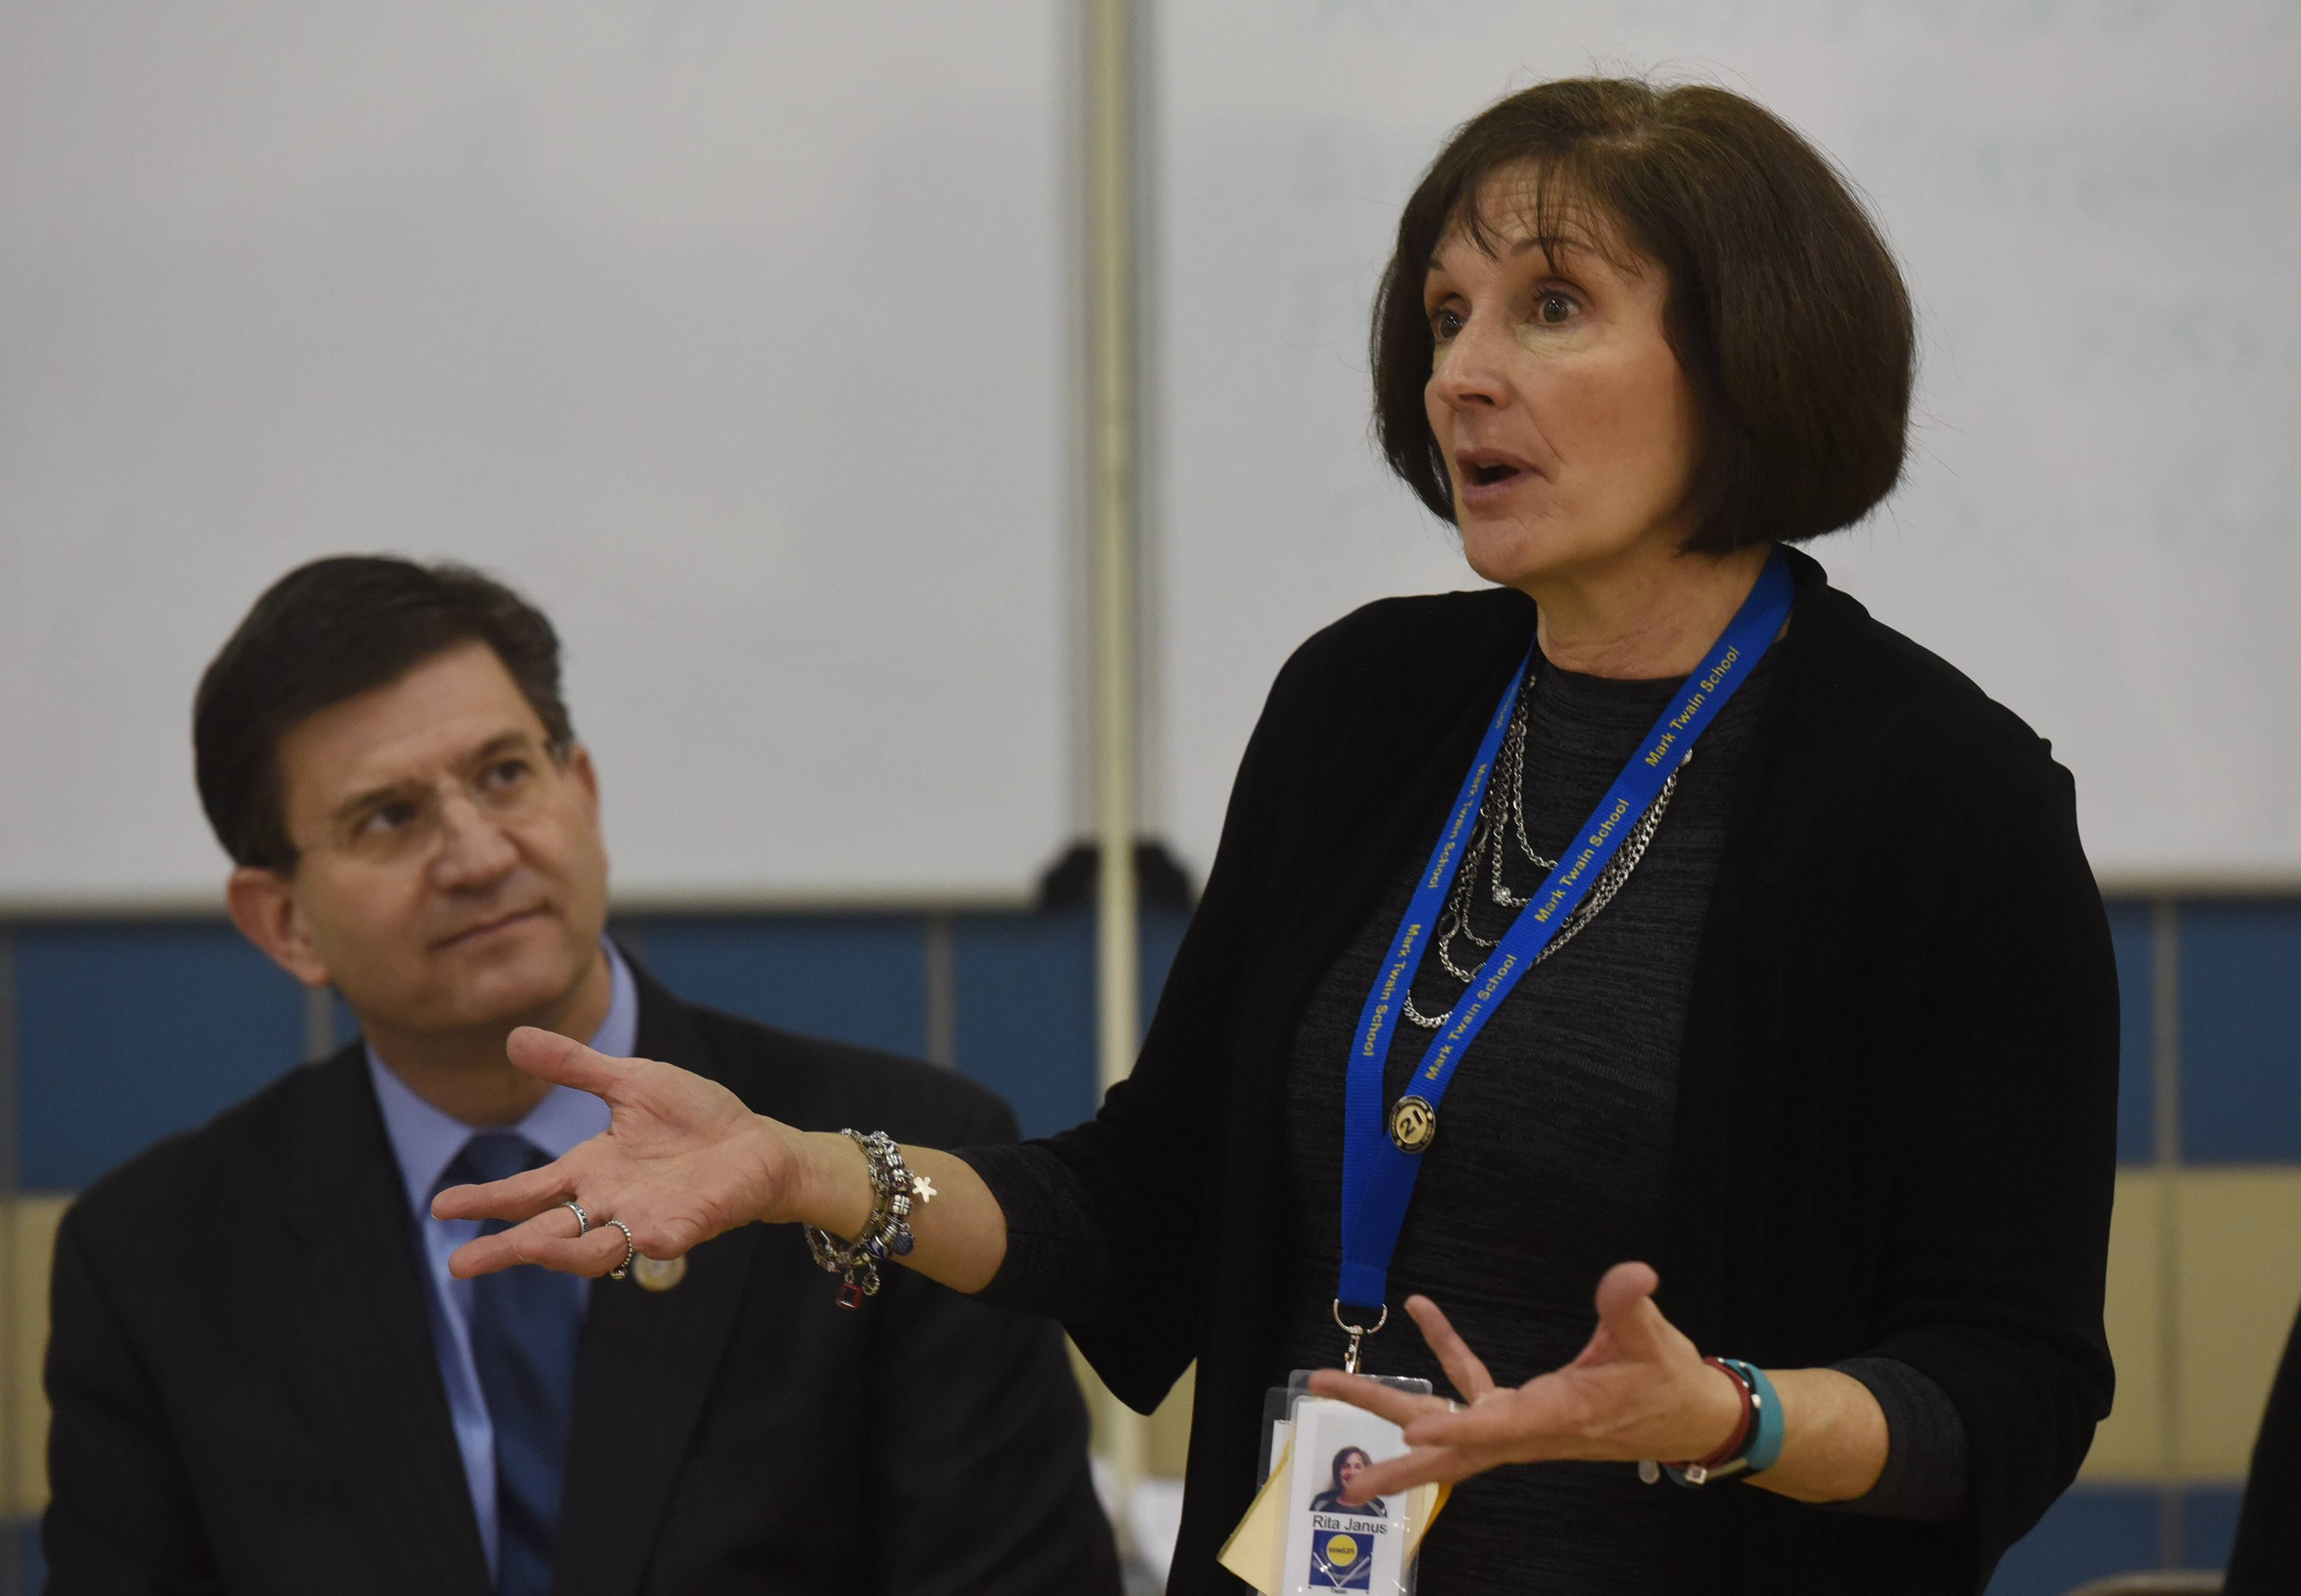 With Rep. Brad Schneider seated behind her, Principal Rita Janus answers a question Thursday about the Breakfast After the Bell program at Mark Twain Elementary School in Wheeling.